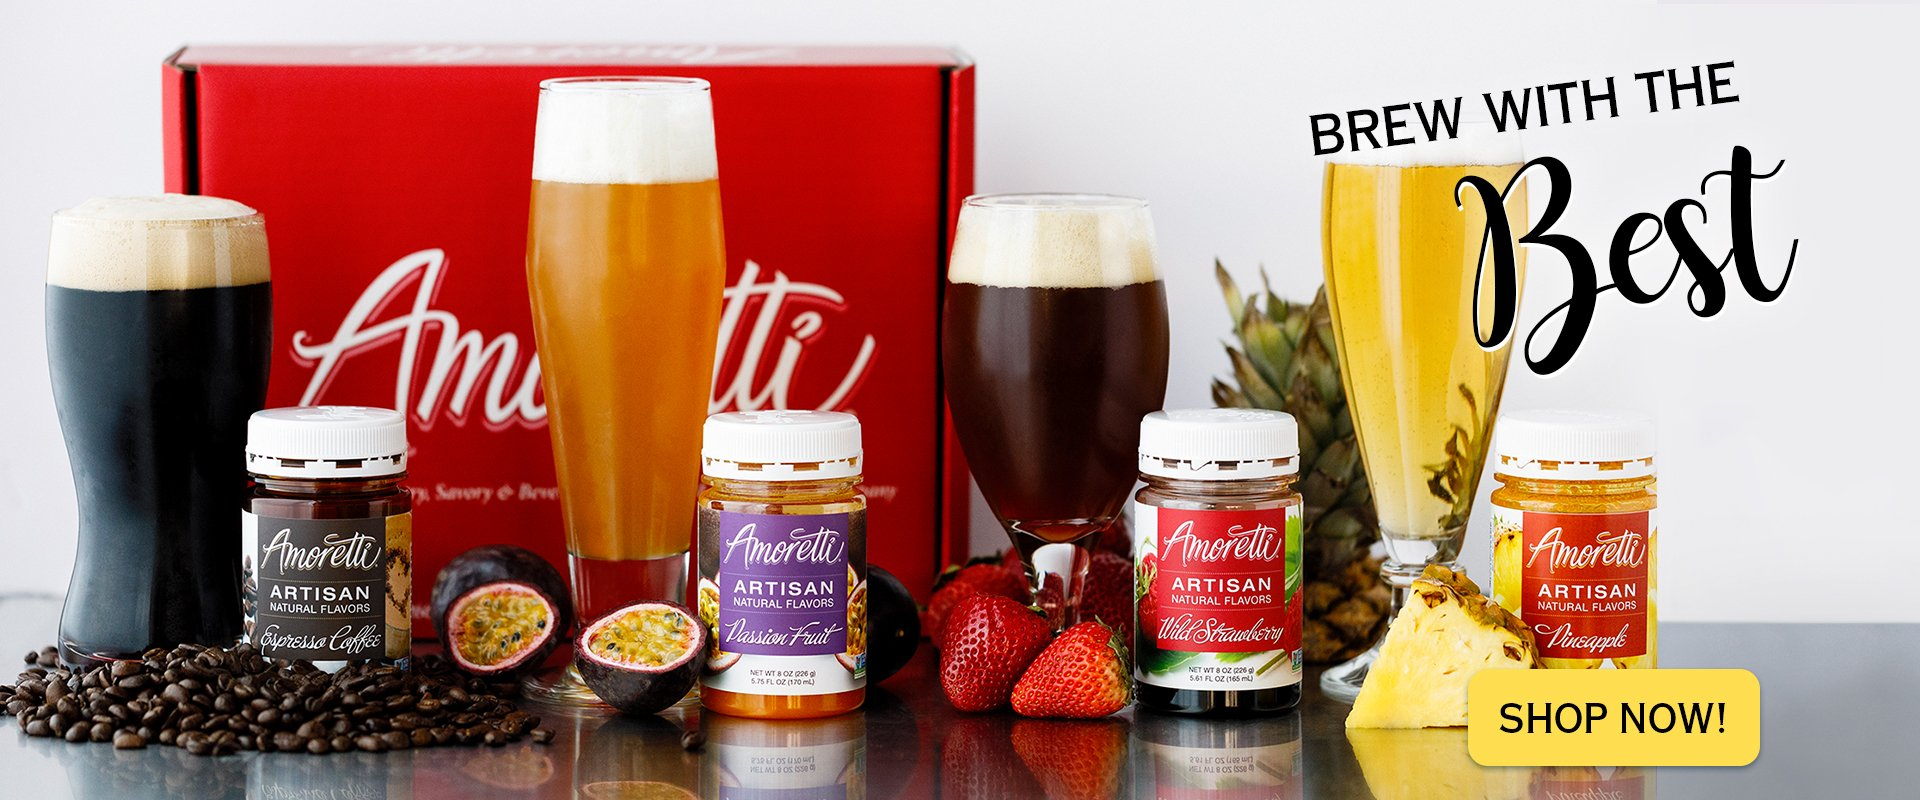 Brew with the best! Amoretti Artisan Natural Flavors